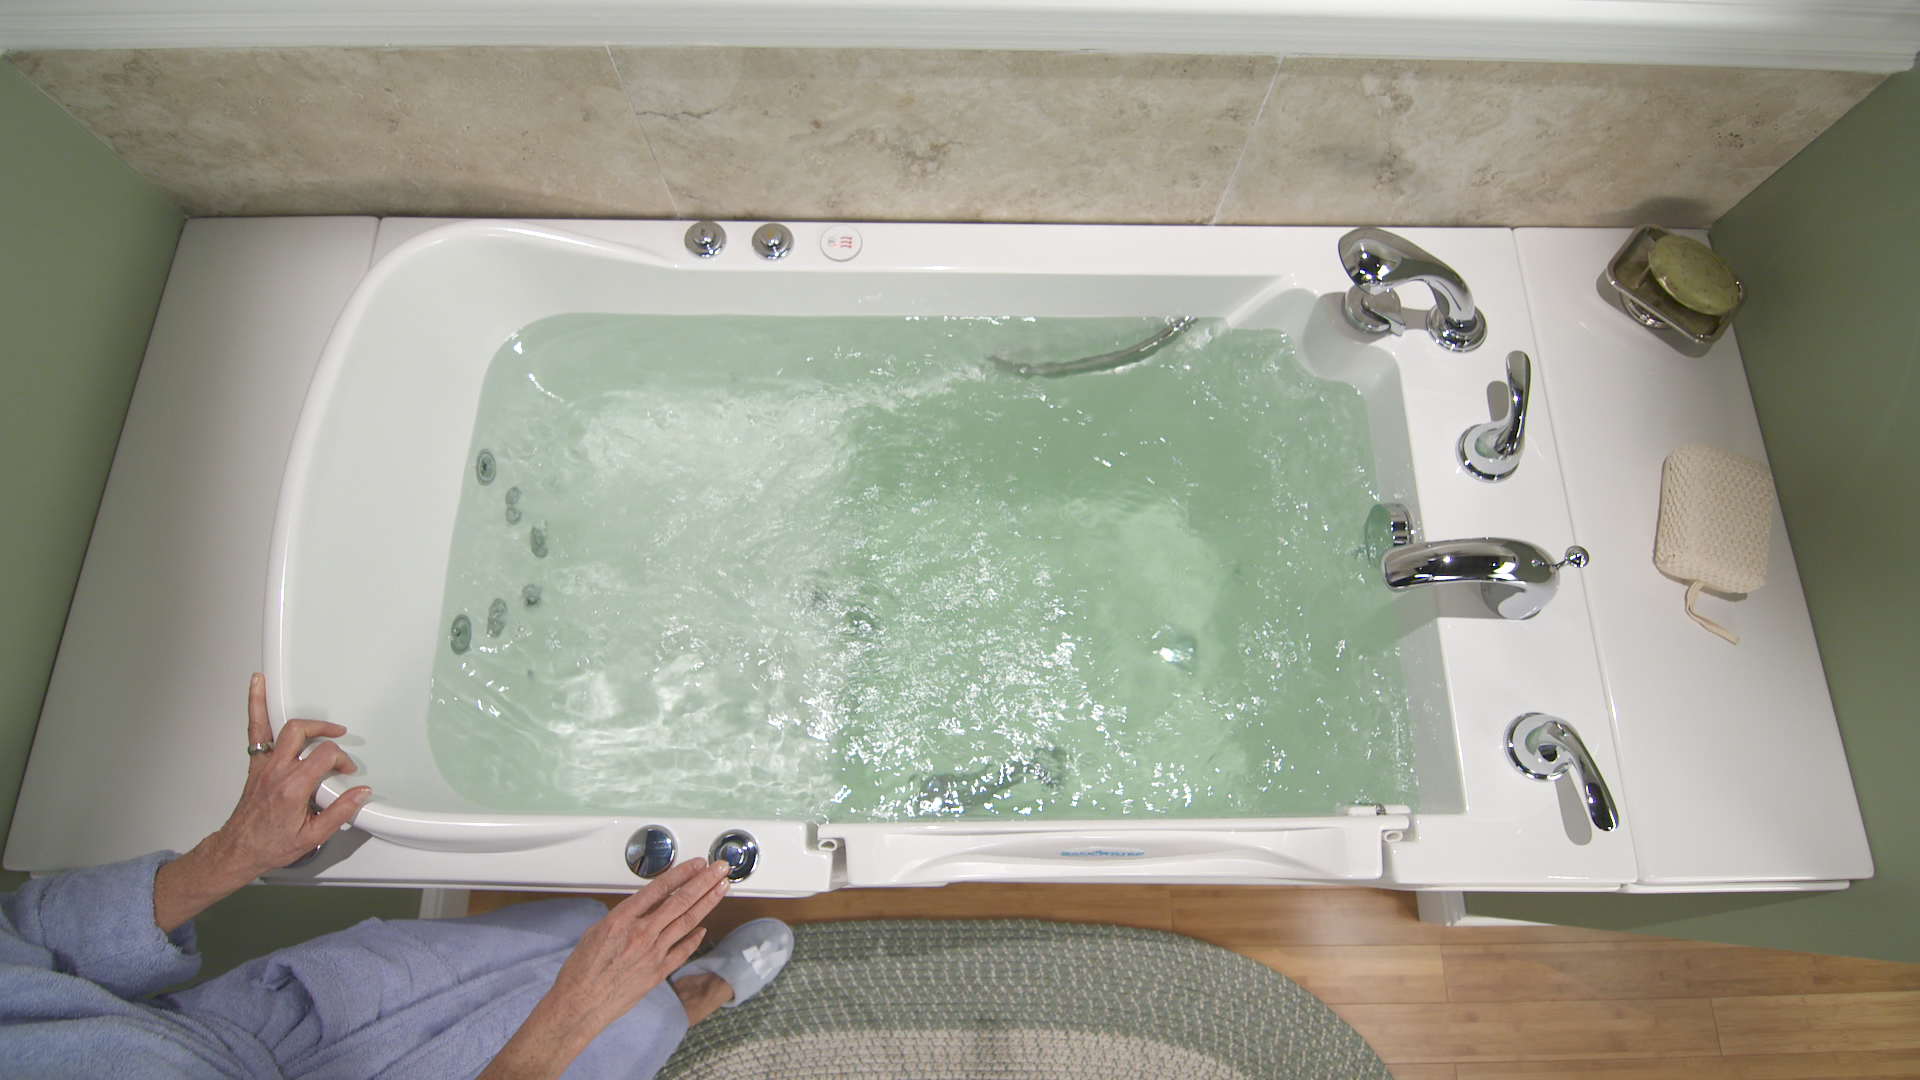 walk in tub with heated seat. All new features on the 2014 Safe Step Walk In Tub include a heated